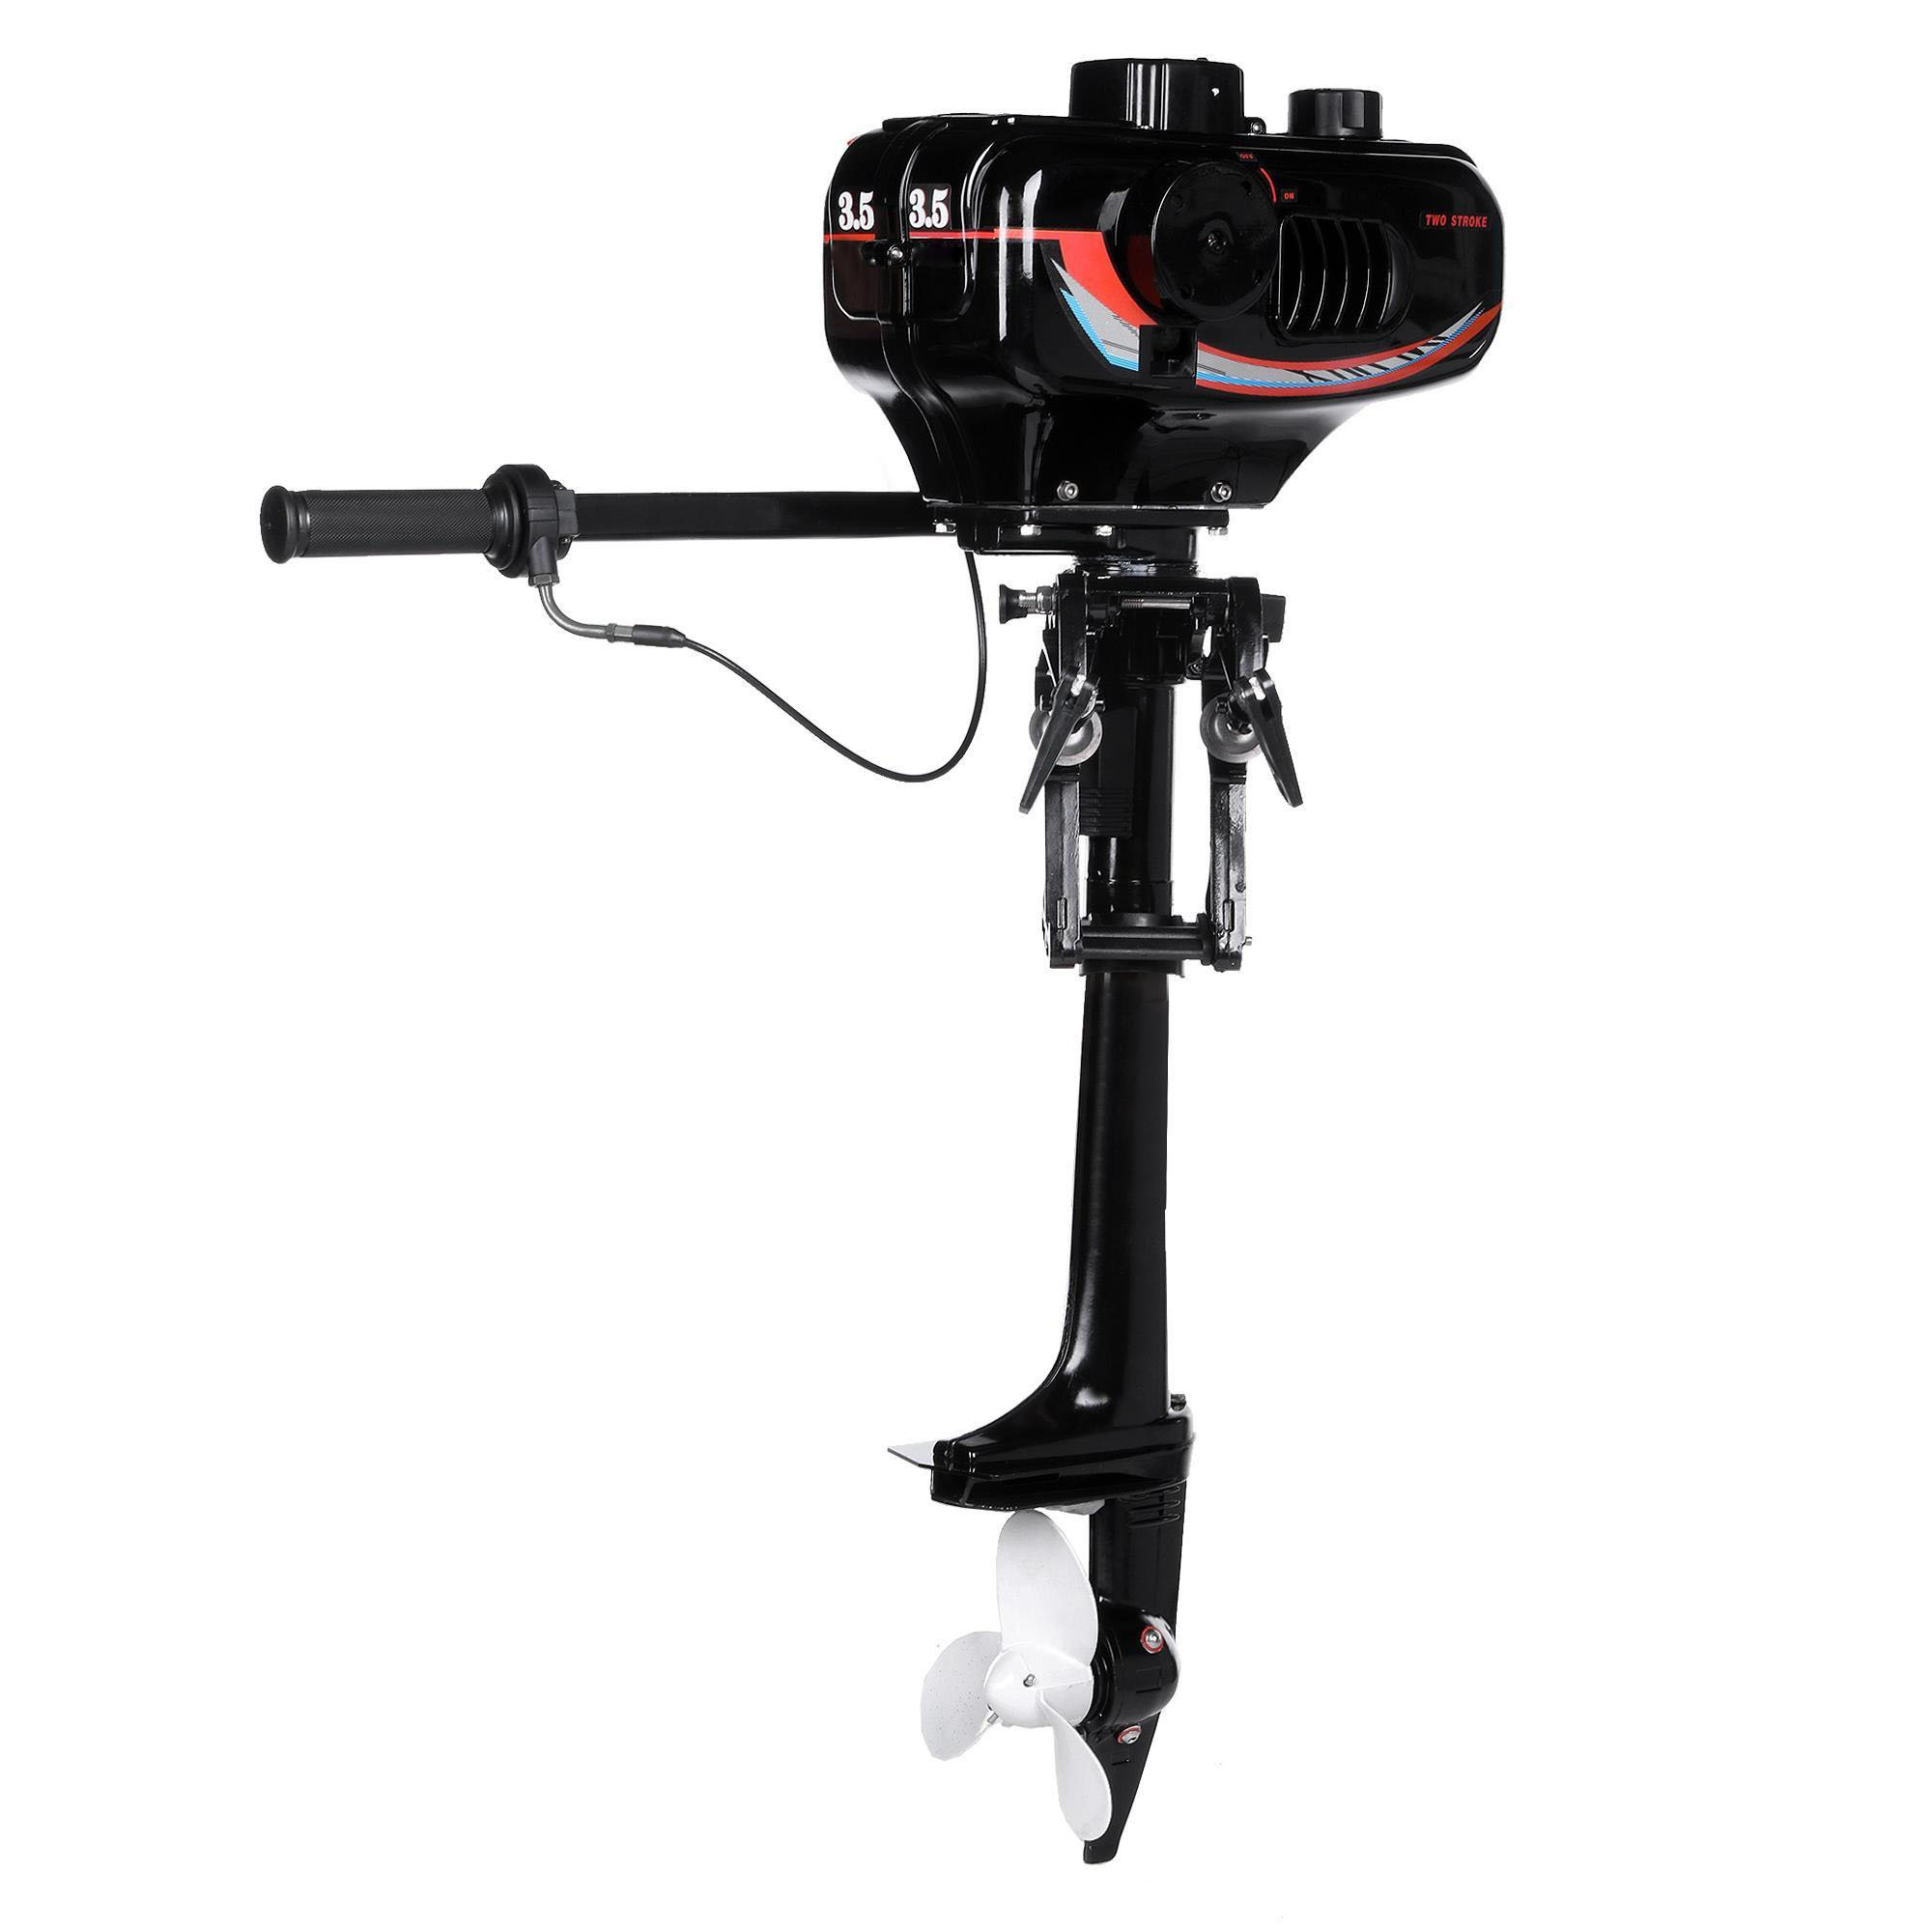 ETUOJI New 3.5HP Outboard Trolling Motor Boat Engine with 2-Stroke Water Cooled System Black Speed-20km/h [US STOCK]